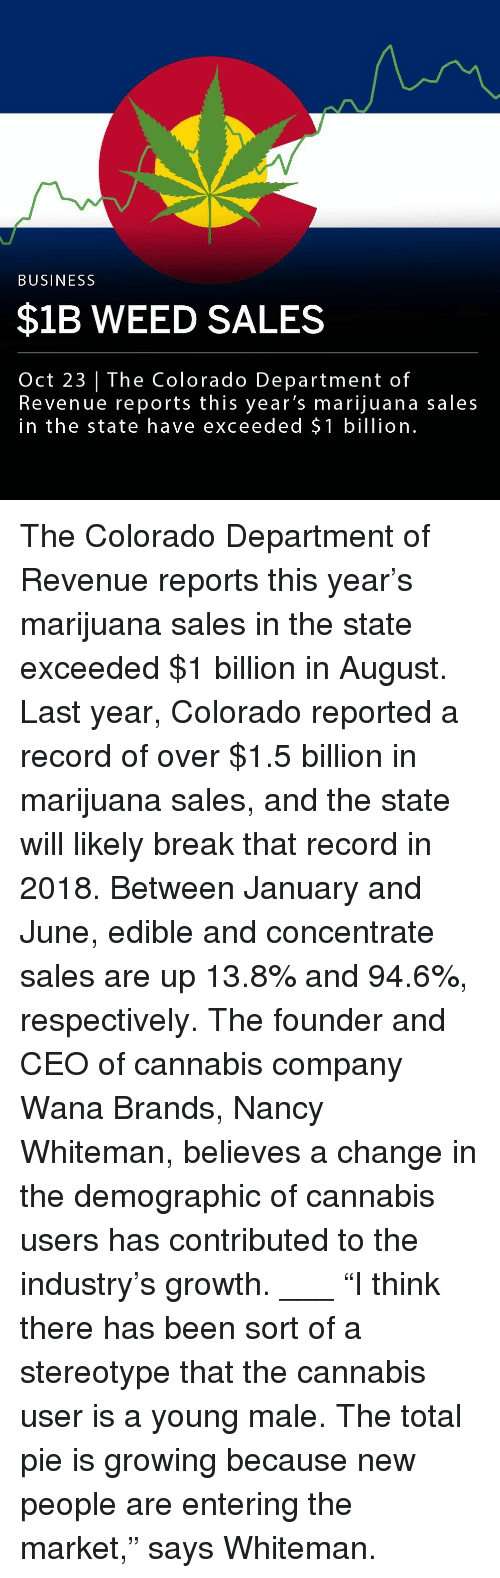 """Memes, Weed, and Break: BUSINESS  $1B WEED SALES  Oct 23   The Colorado Department of  Revenue reports this year's marijuana sales  in the state have exceeded $1 billion The Colorado Department of Revenue reports this year's marijuana sales in the state exceeded $1 billion in August. Last year, Colorado reported a record of over $1.5 billion in marijuana sales, and the state will likely break that record in 2018. Between January and June, edible and concentrate sales are up 13.8% and 94.6%, respectively. The founder and CEO of cannabis company Wana Brands, Nancy Whiteman, believes a change in the demographic of cannabis users has contributed to the industry's growth. ___ """"I think there has been sort of a stereotype that the cannabis user is a young male. The total pie is growing because new people are entering the market,"""" says Whiteman."""